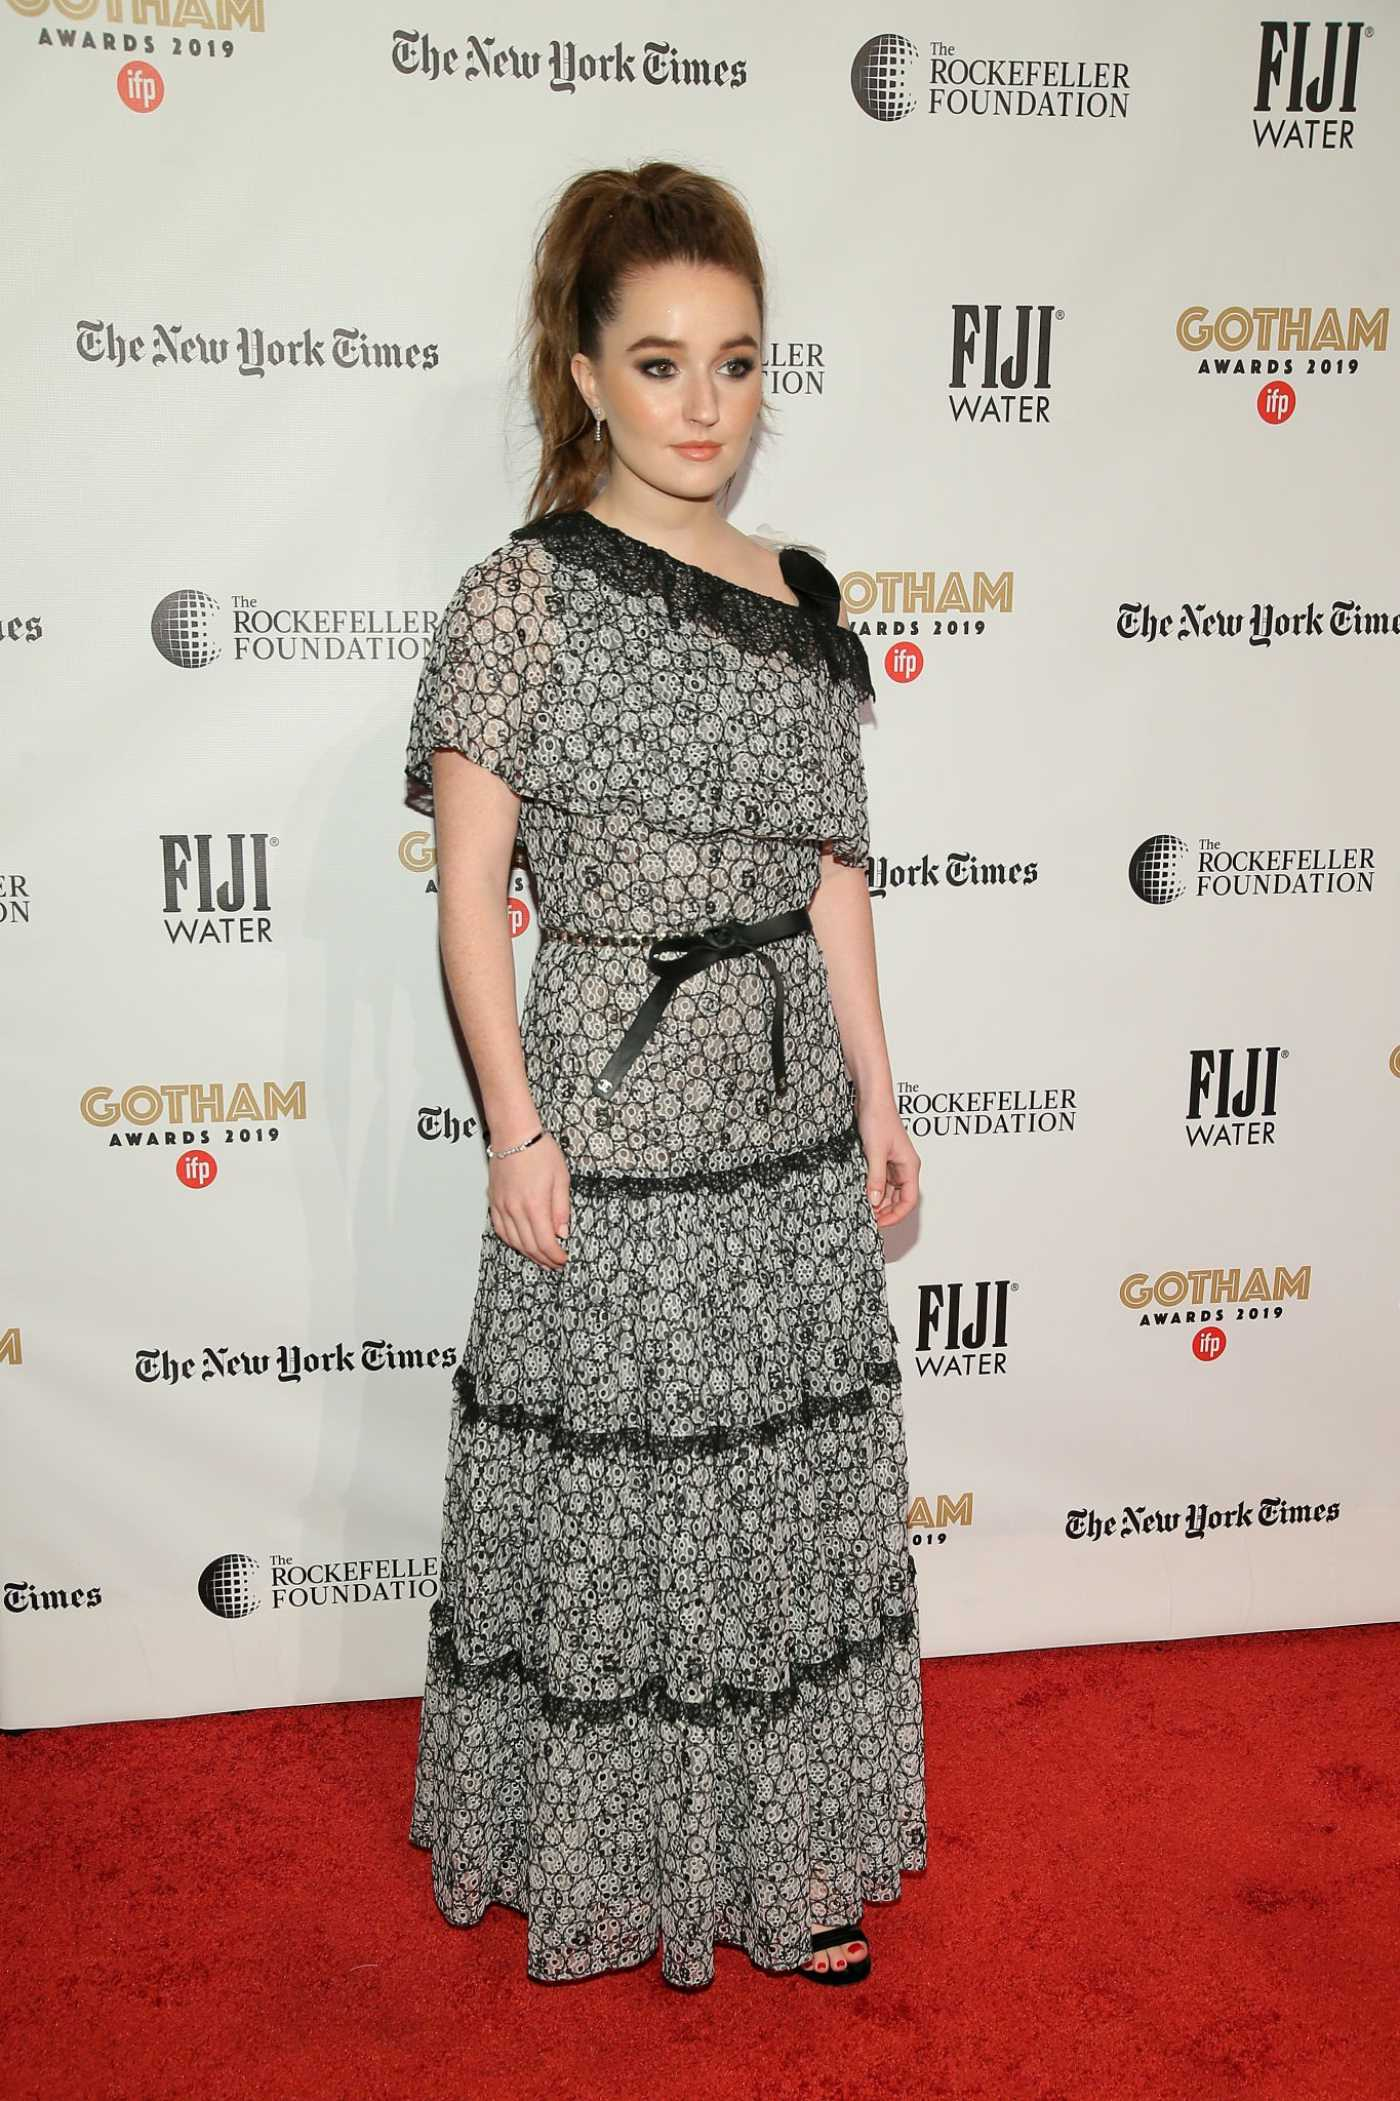 Kaitlyn Dever Attends the 29th Annual IFP Gotham Awards in New York City 12/02/2019